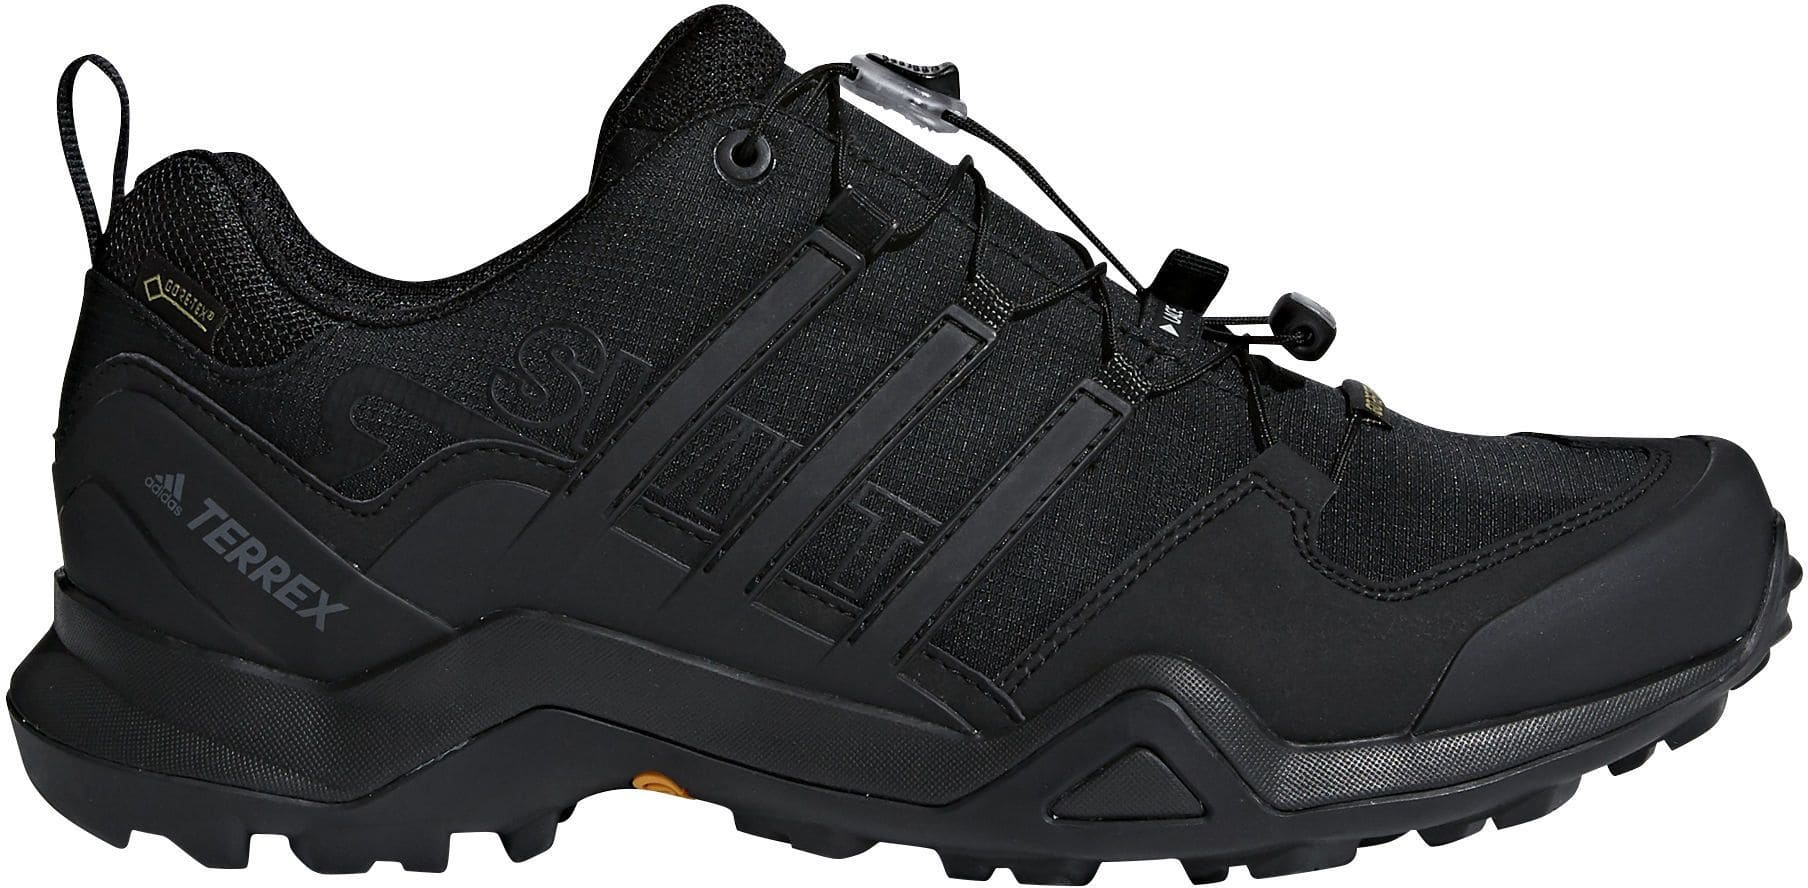 8521fca3a2a Adidas Outdoor Men s Terrex Swift R2 GTX Hiking Shoes  80.99 ...